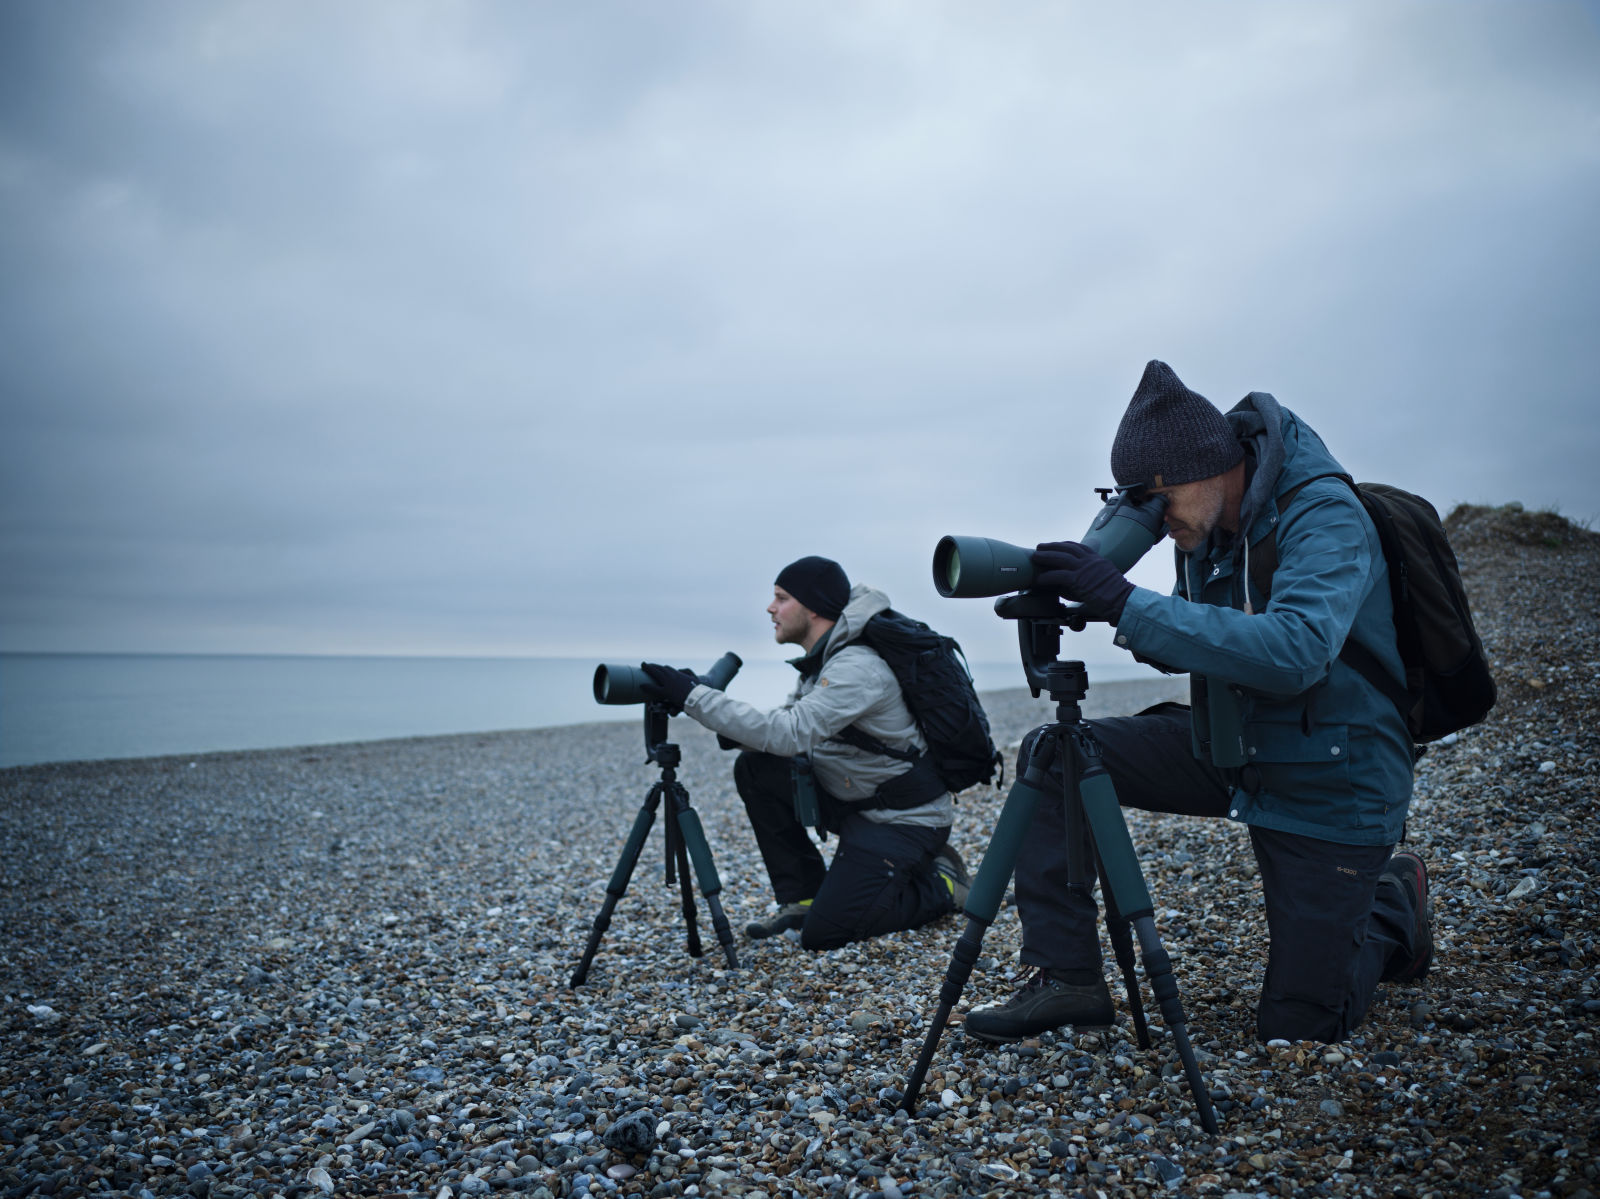 Birding at the coast with the ATX/STX/BTX spotting scopes.